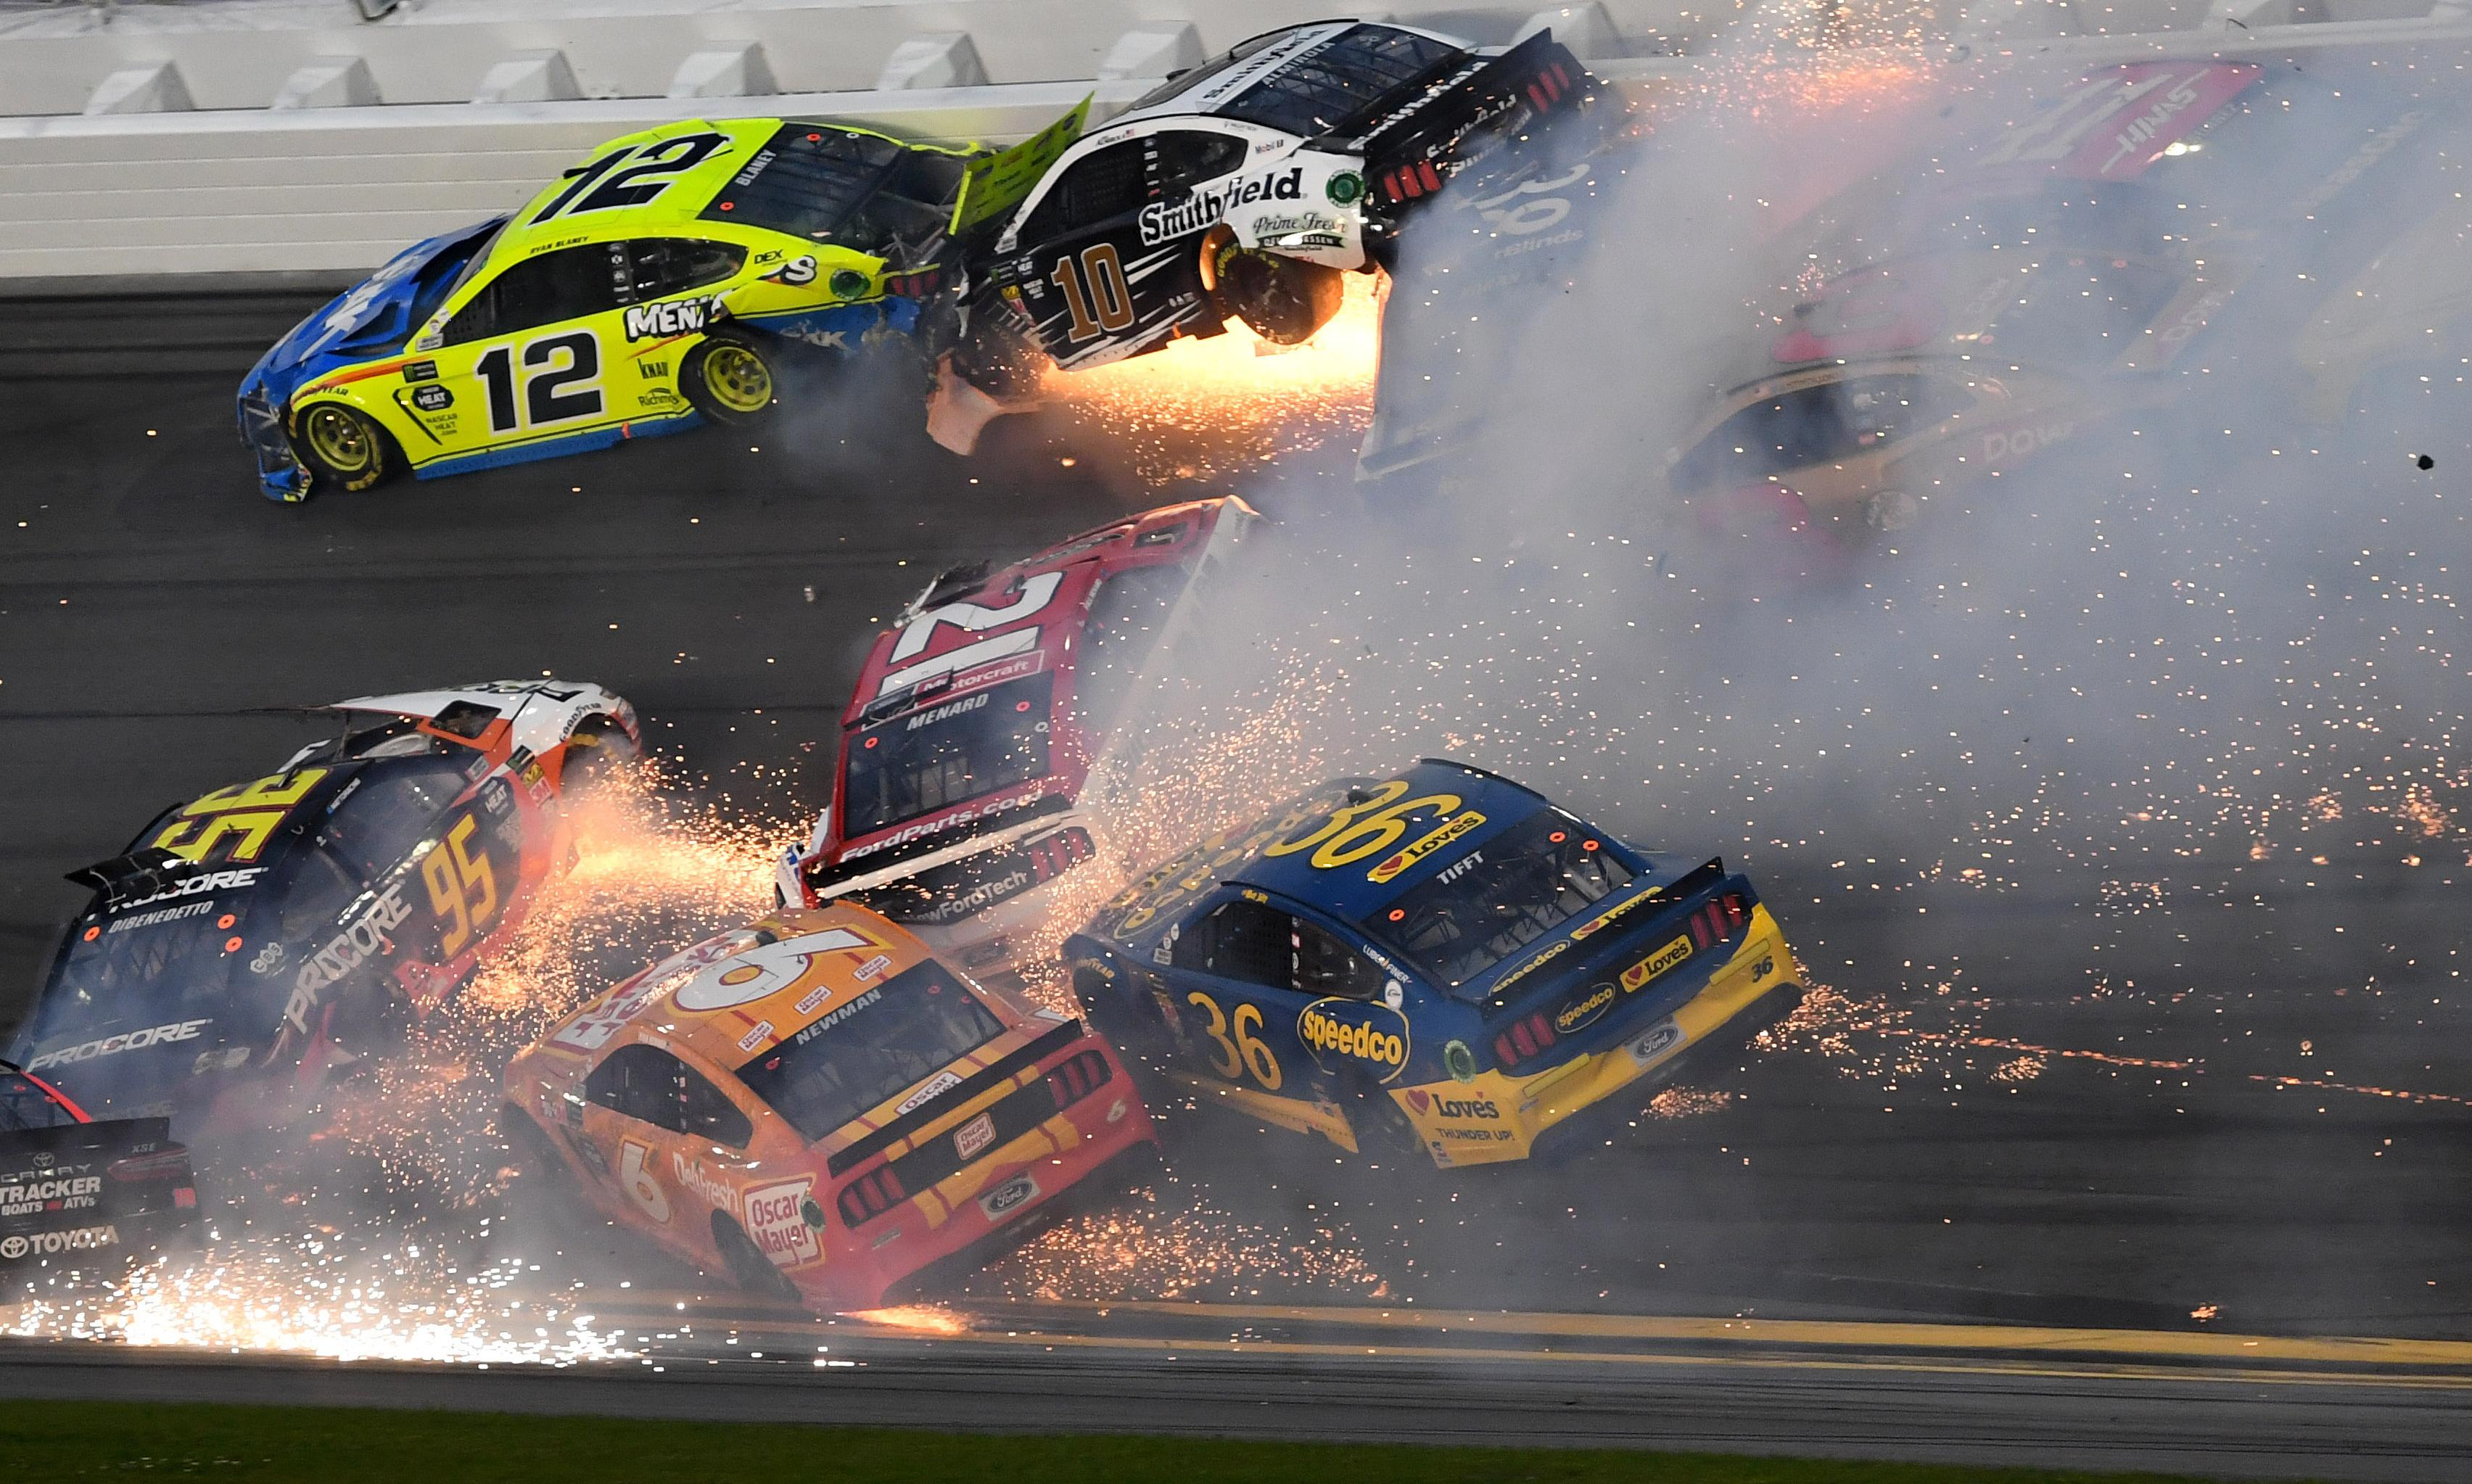 Denny Hamlin wins Daytona 500 after series of huge crashes